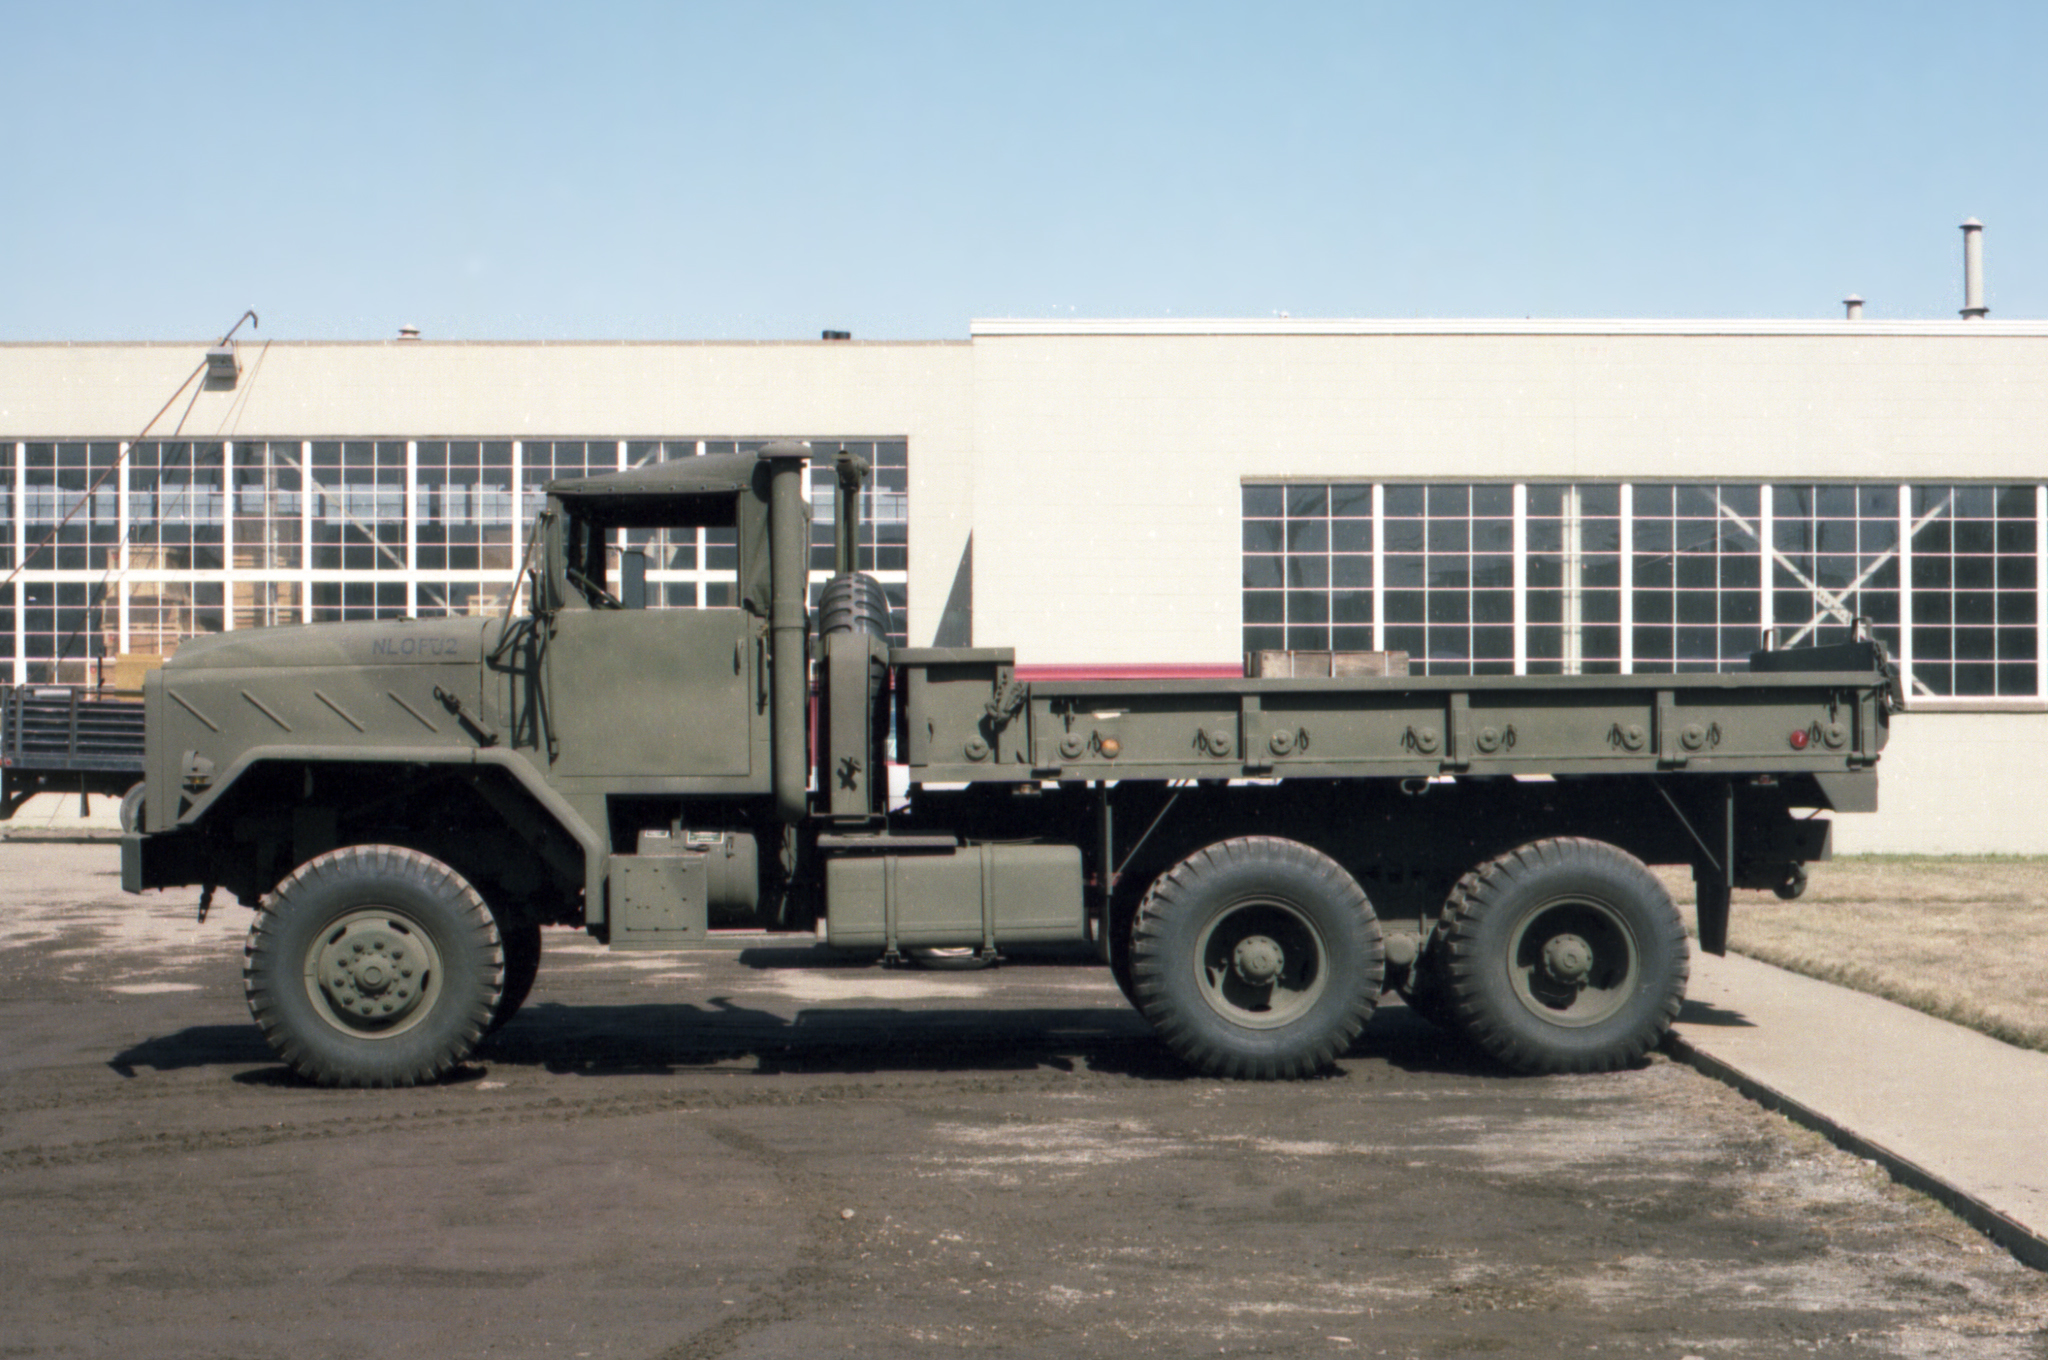 Click image for larger version  Name:1980-XM963-6x6-Military-Vehicle.jpg Views:1561 Size:2.05 MB ID:1982488